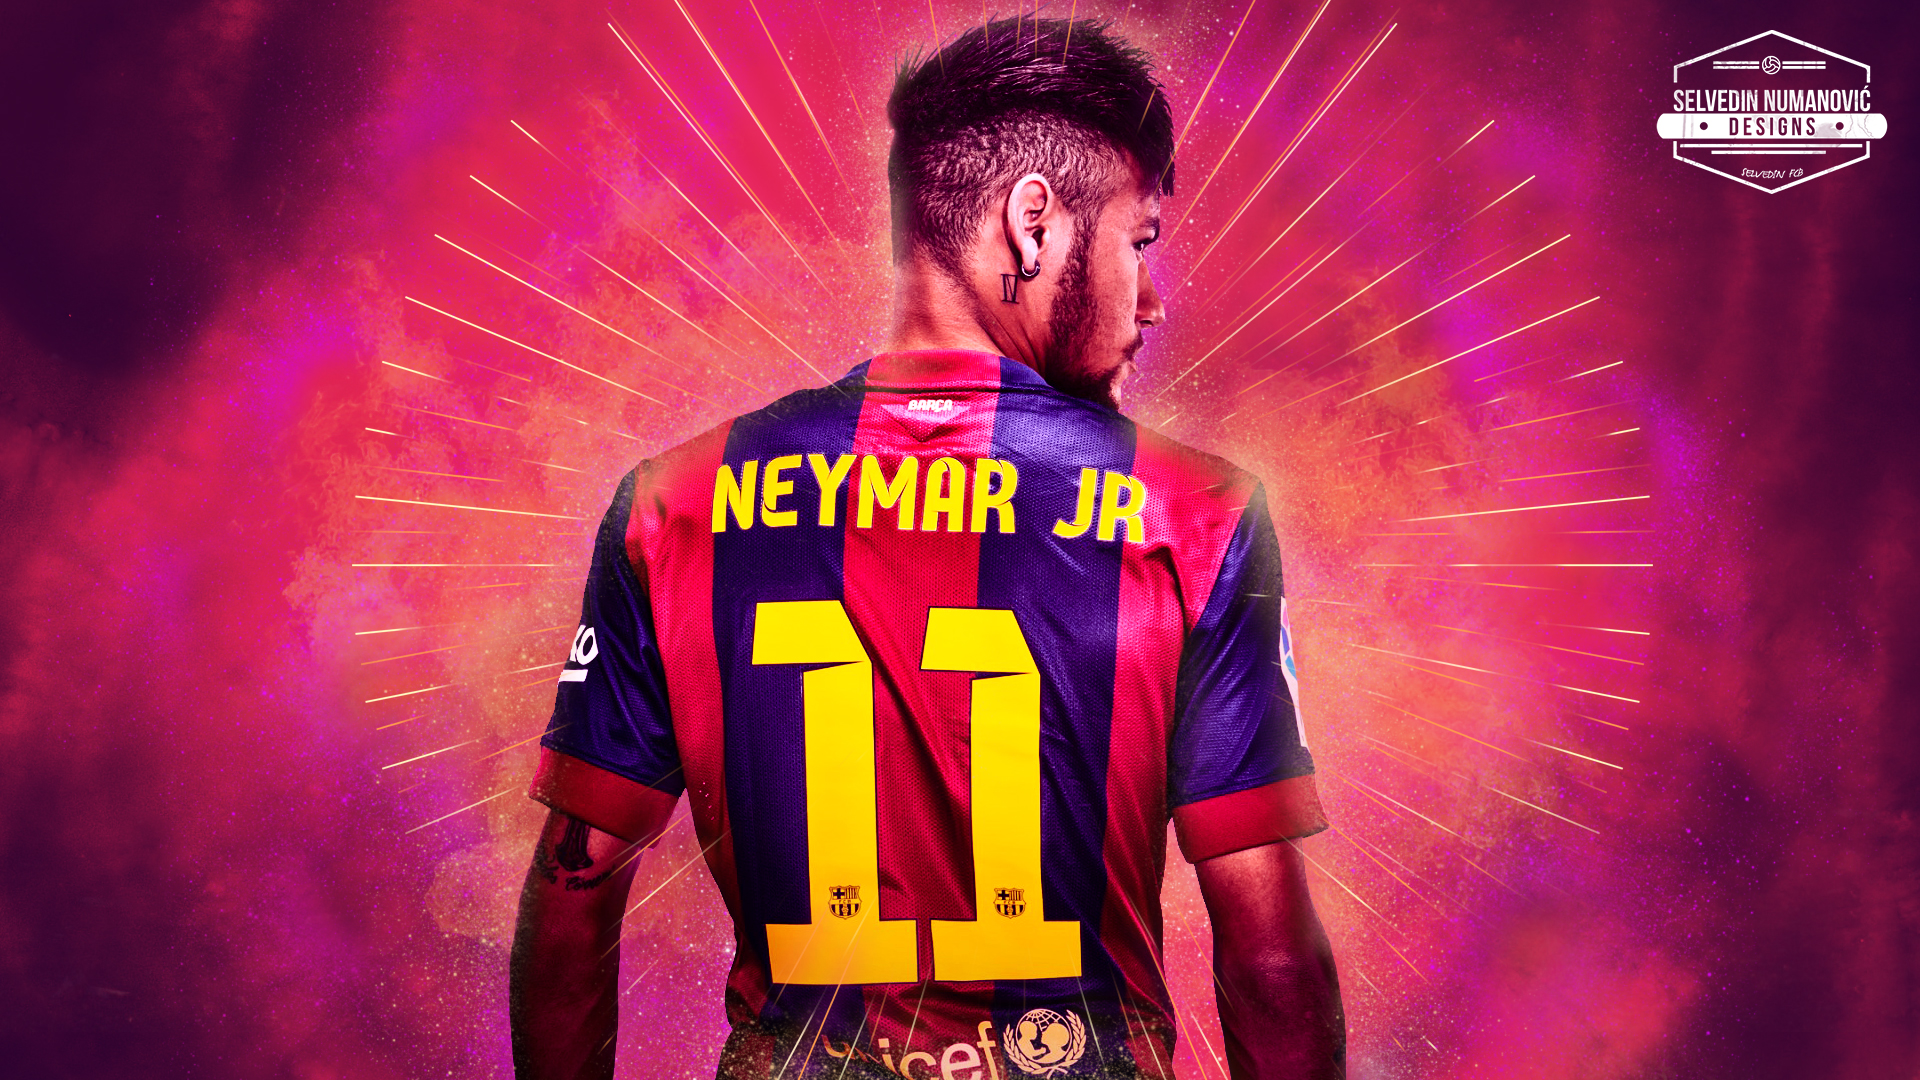 Hd wallpaper neymar -  Neymar Jr Hd Wallpaper 2015 By Selvedinfcb